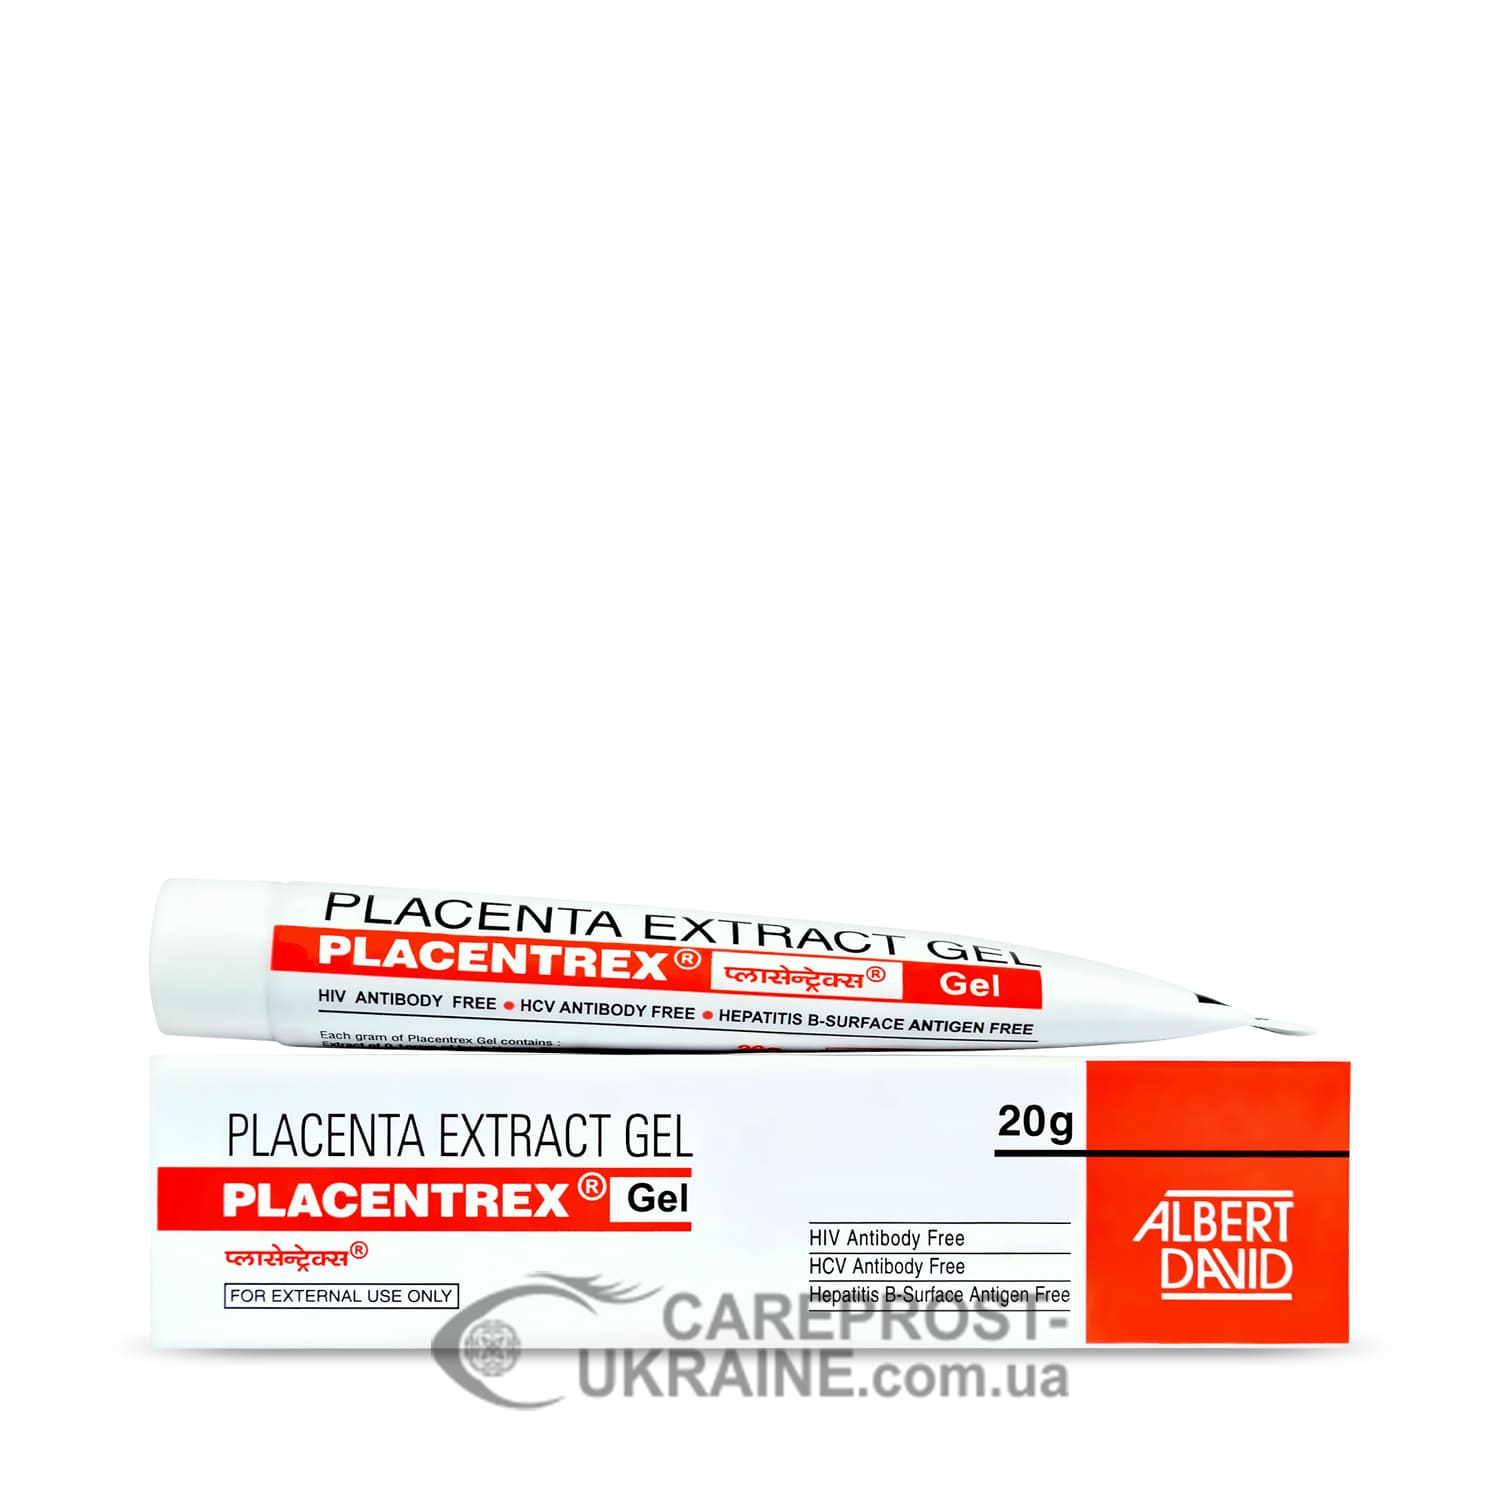 Гель с экстрактом плаценты (Placenta Extract Gel) Placentrex 20г